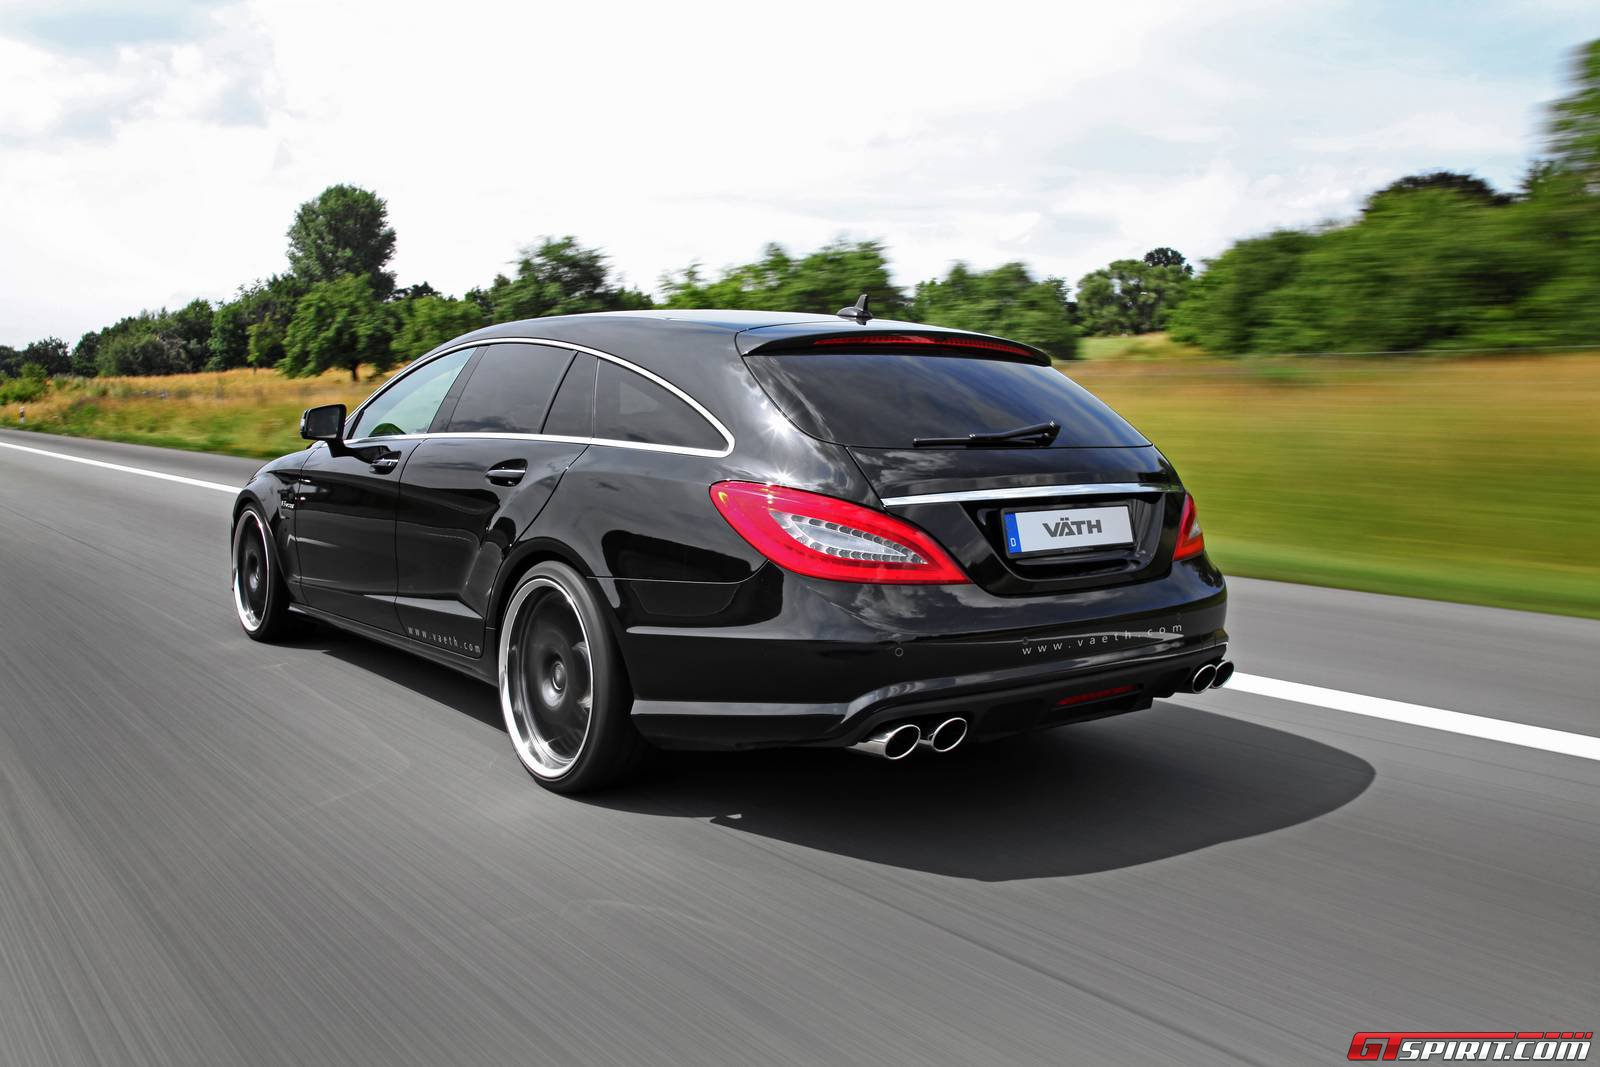 official 846hp mercedes benz cls 63 amg shooting brake by. Black Bedroom Furniture Sets. Home Design Ideas